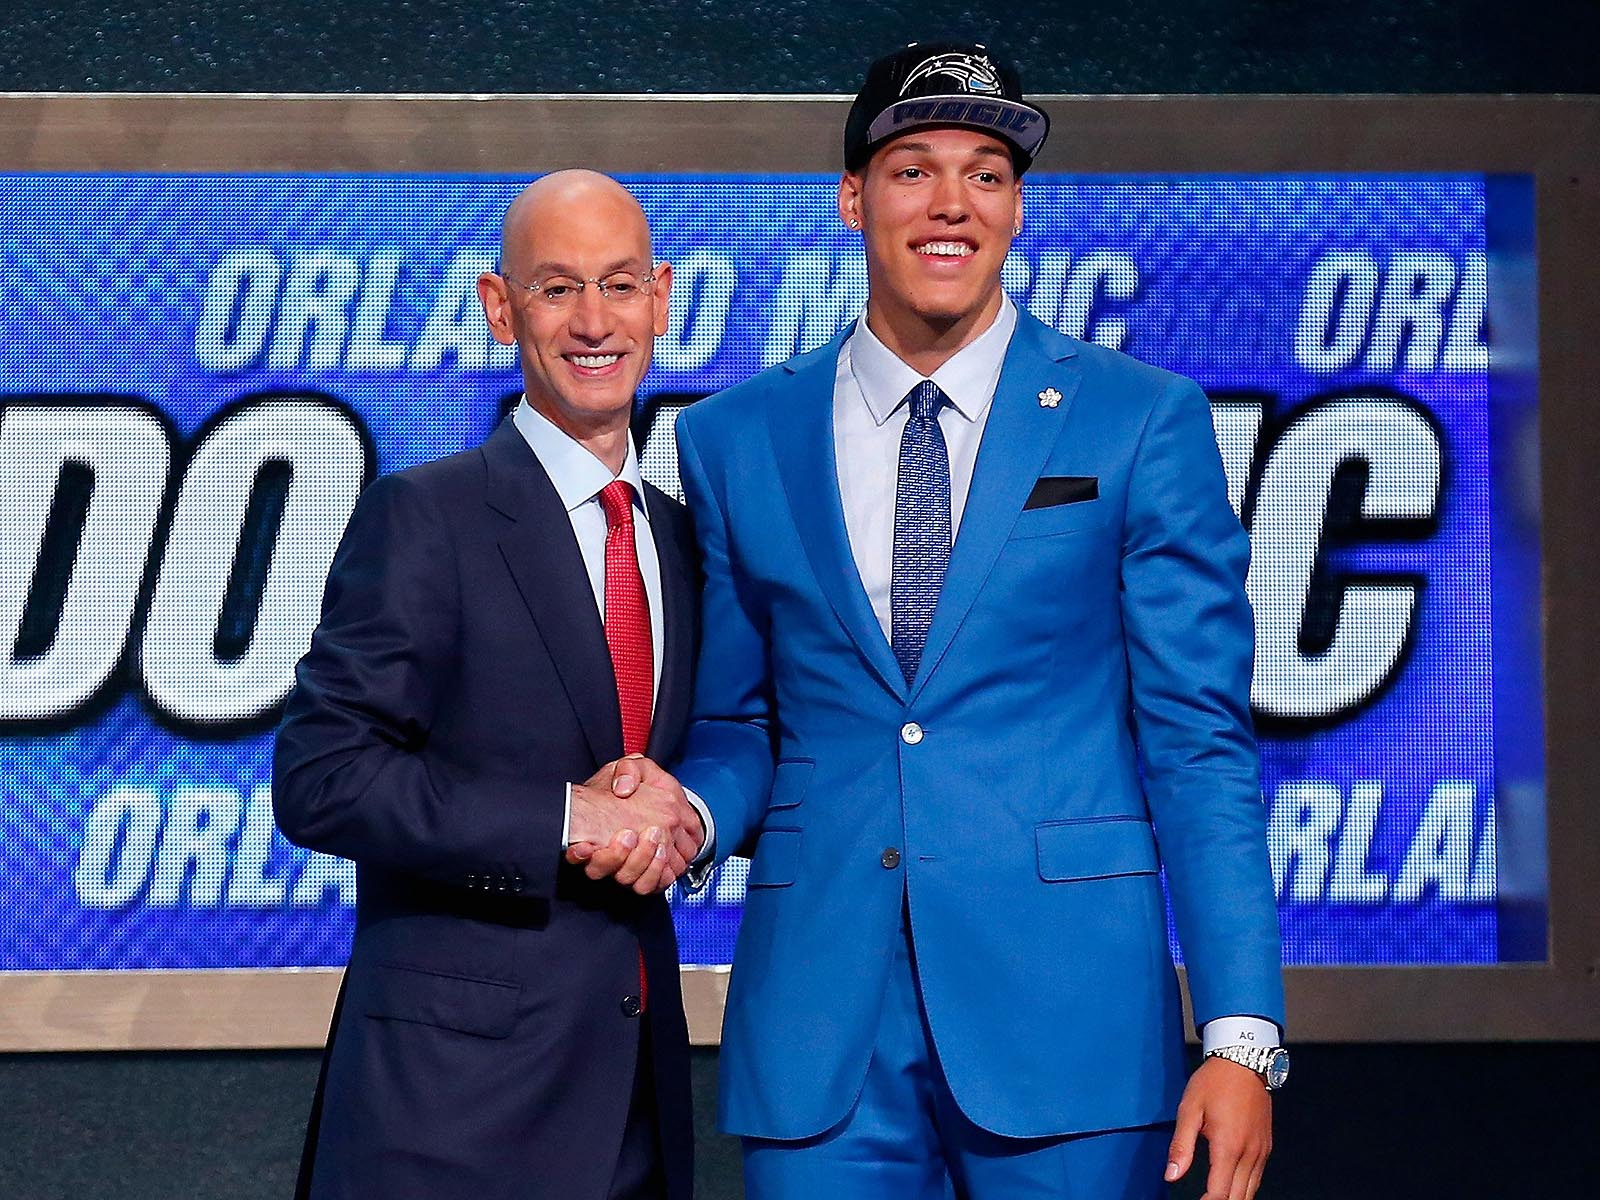 He knew he was going to Orlando right? Gordon goes with an electric blue suit perfectly matching the Magic colors.